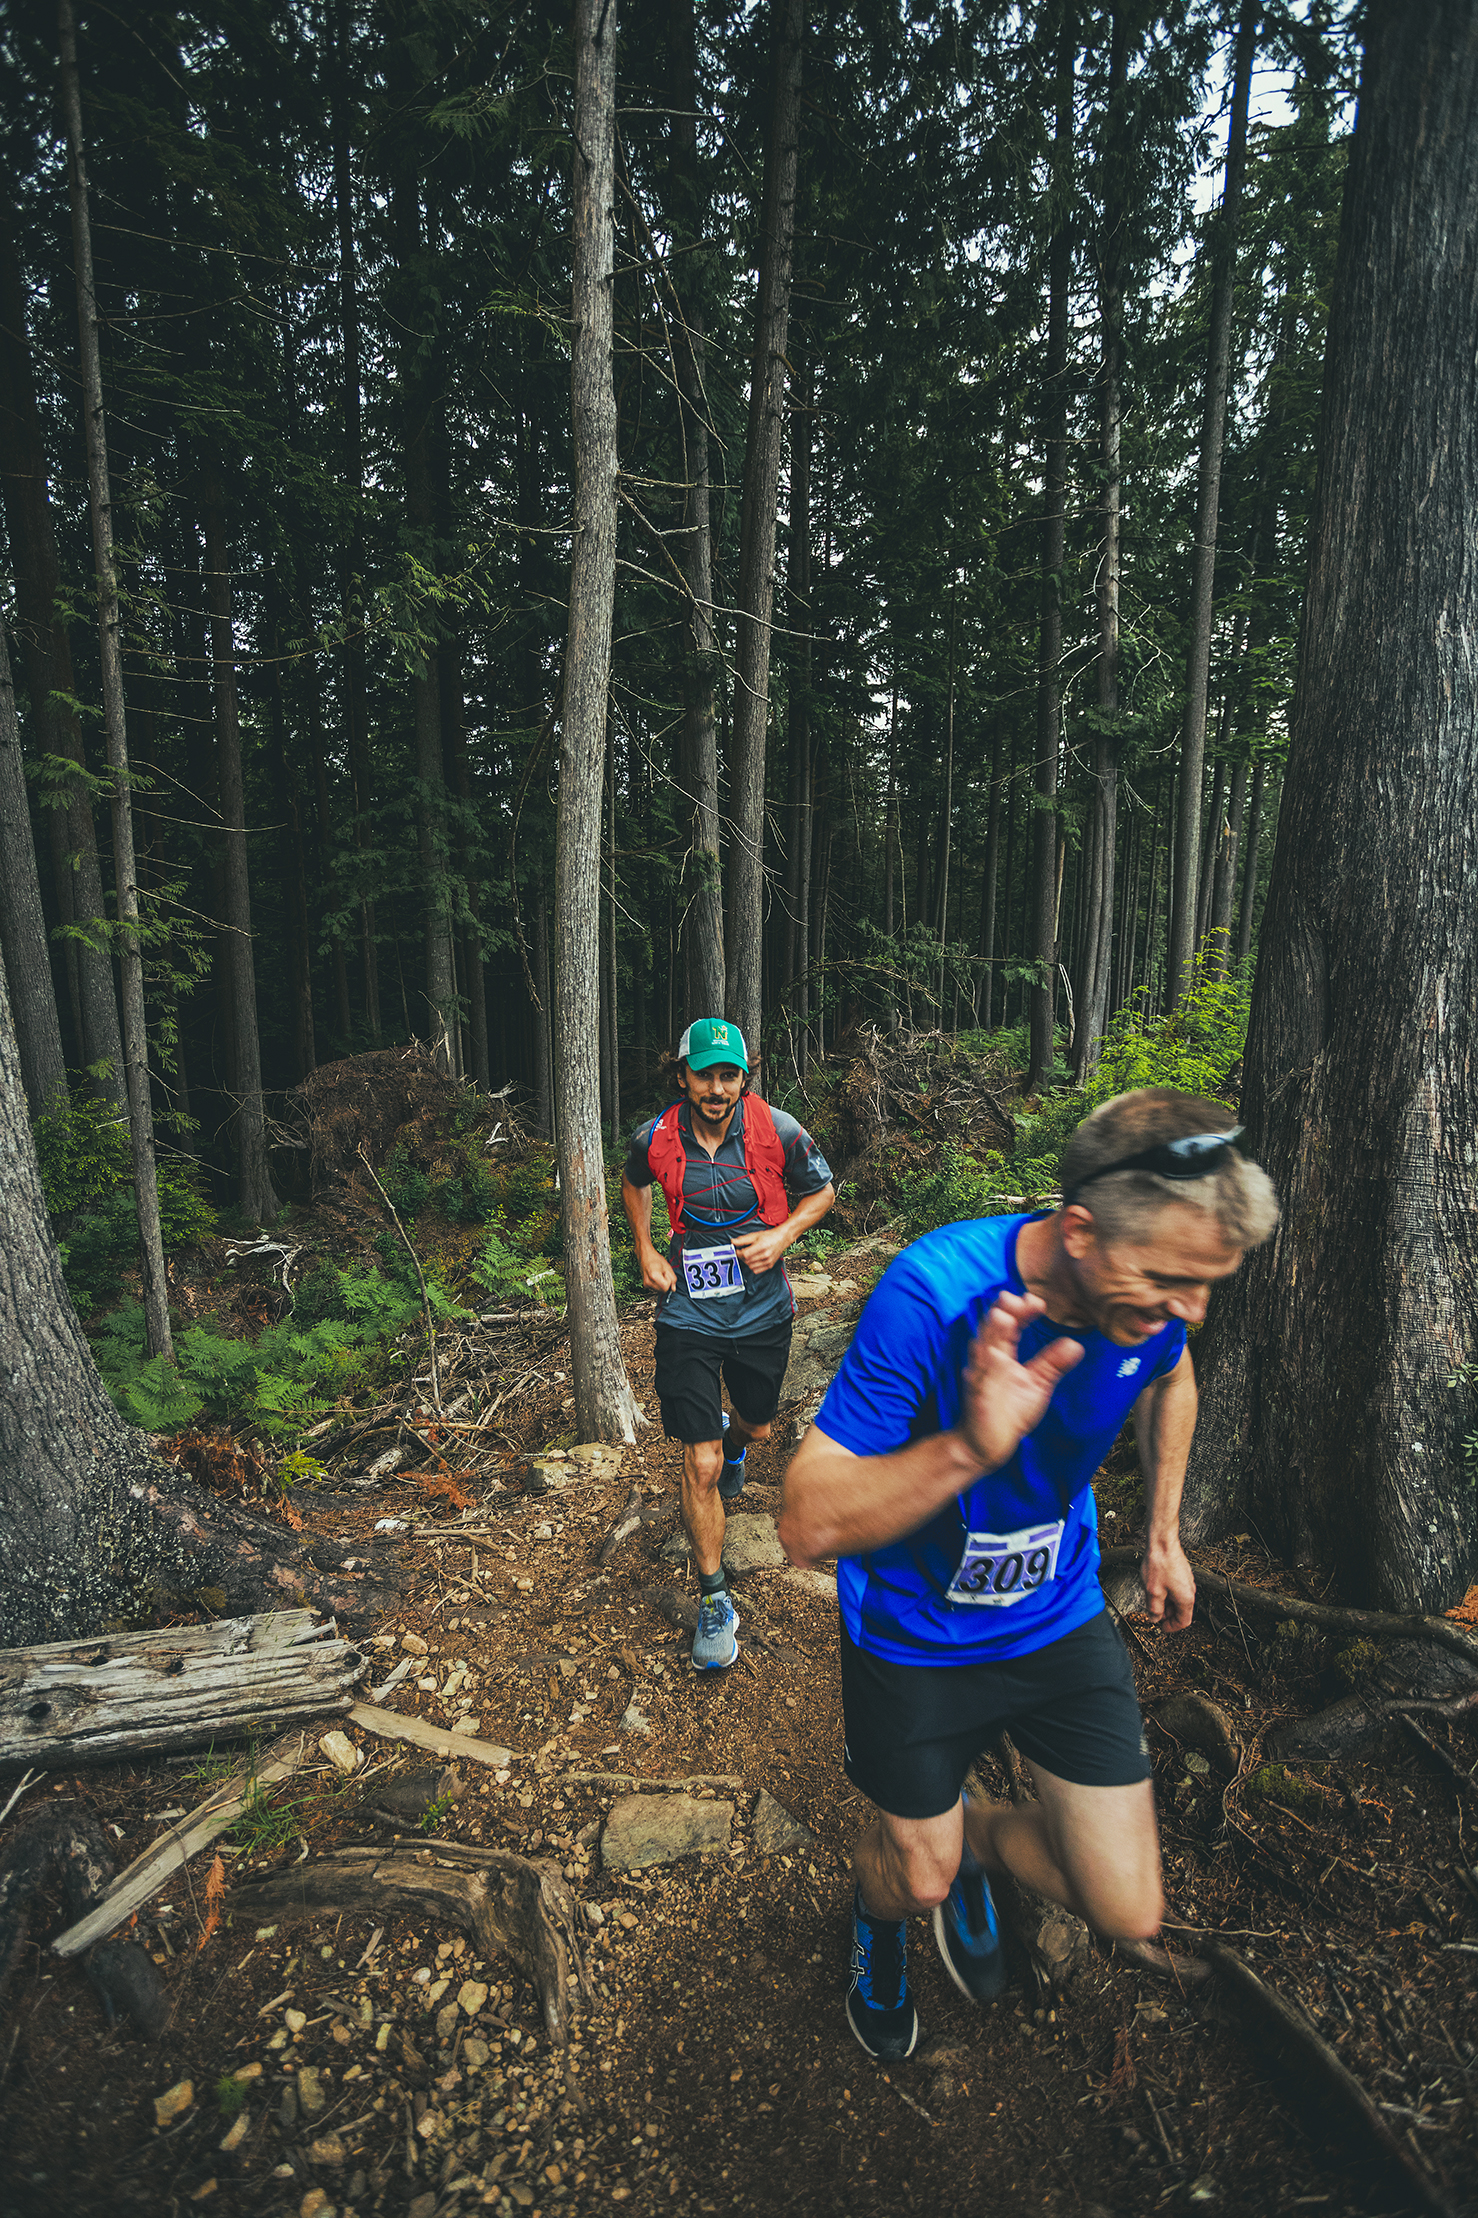 Fraser Valley Trail Races - Bear Mountain - IMG_1496 by Brice Ferre Studio - Vancouver Portrait Adventure and Athlete Photographer.jpg